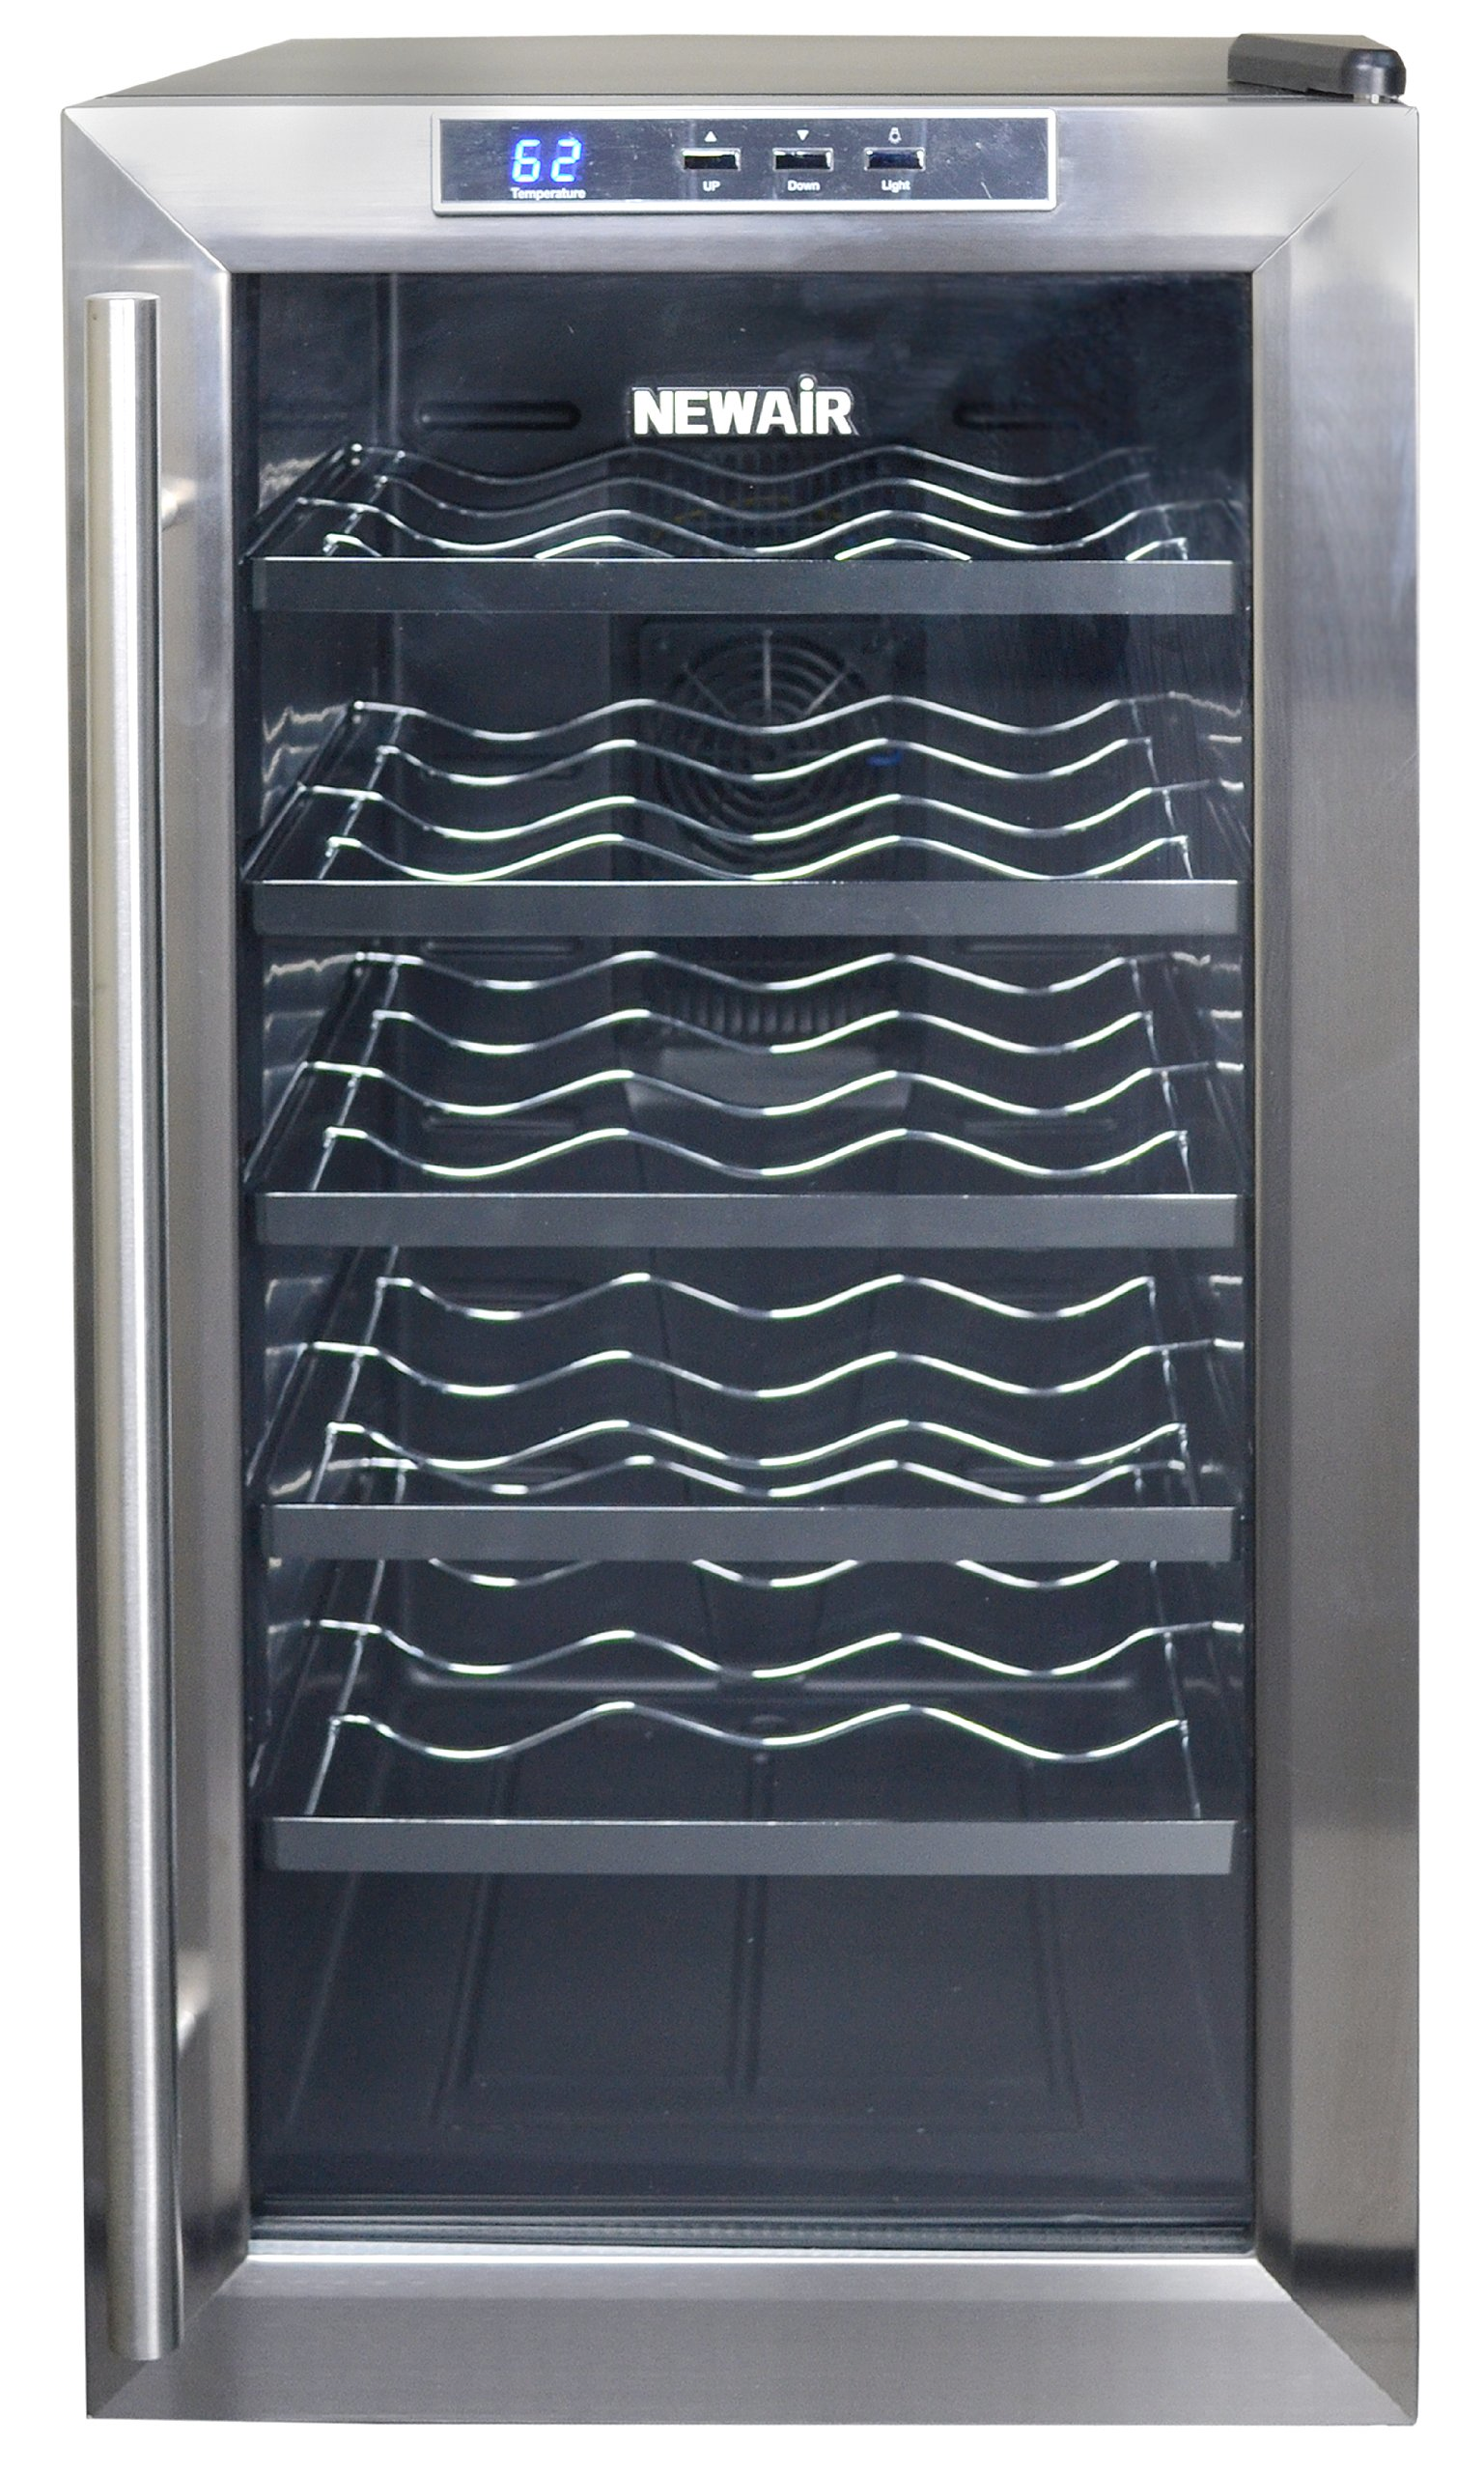 NewAir AW-181E 18 Bottle Thermoelectric Wine Cooler, Black by NewAir (Image #3)